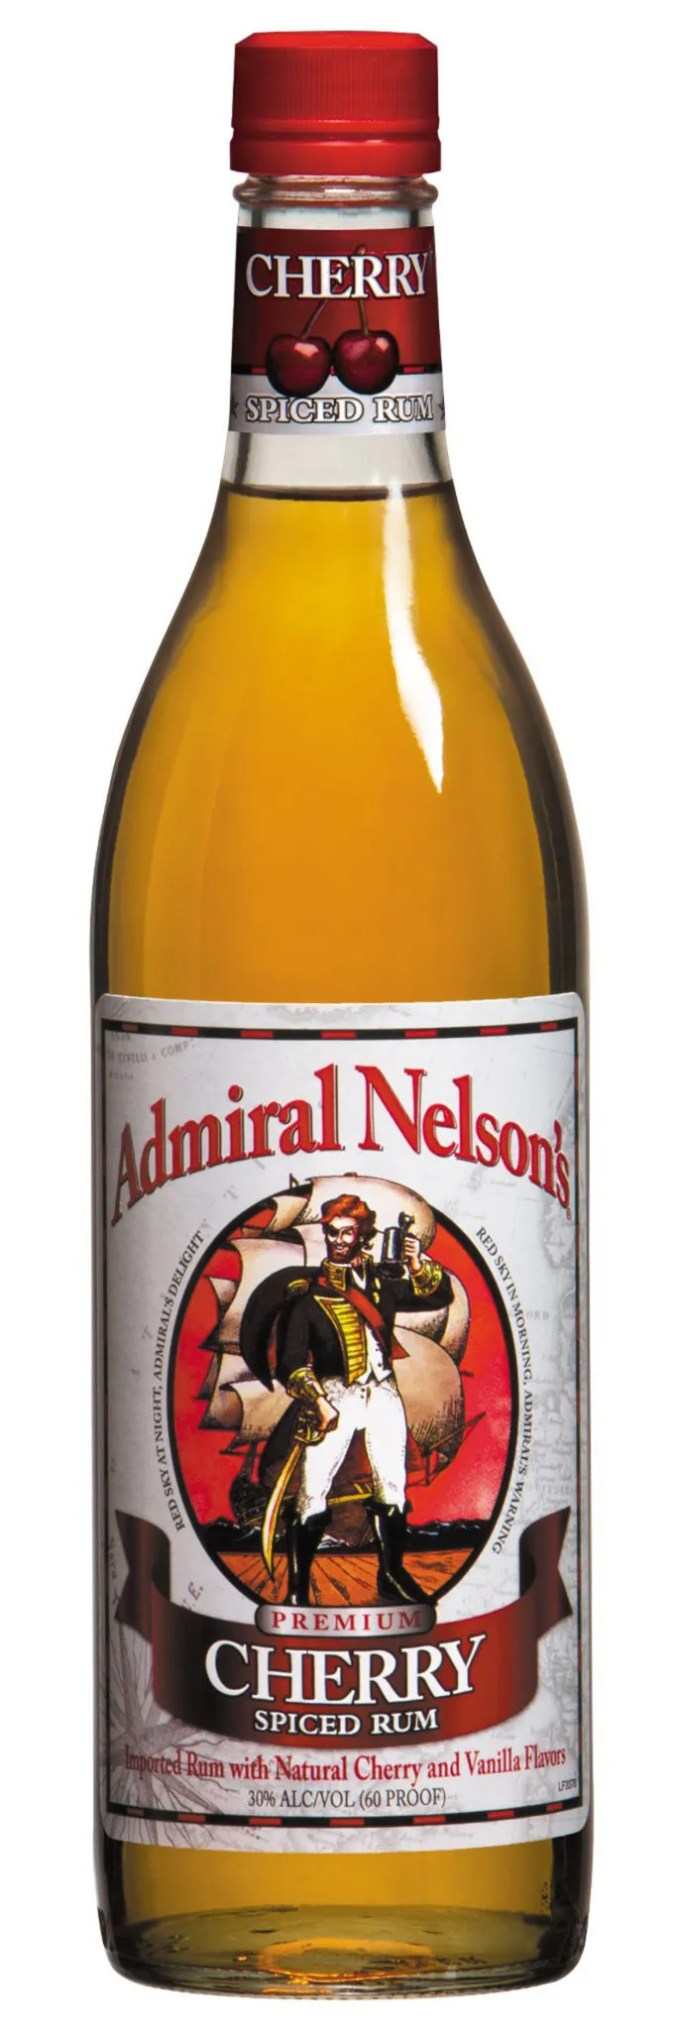 Admiral Nelson Cherry flavored rum from US Virgin Islands